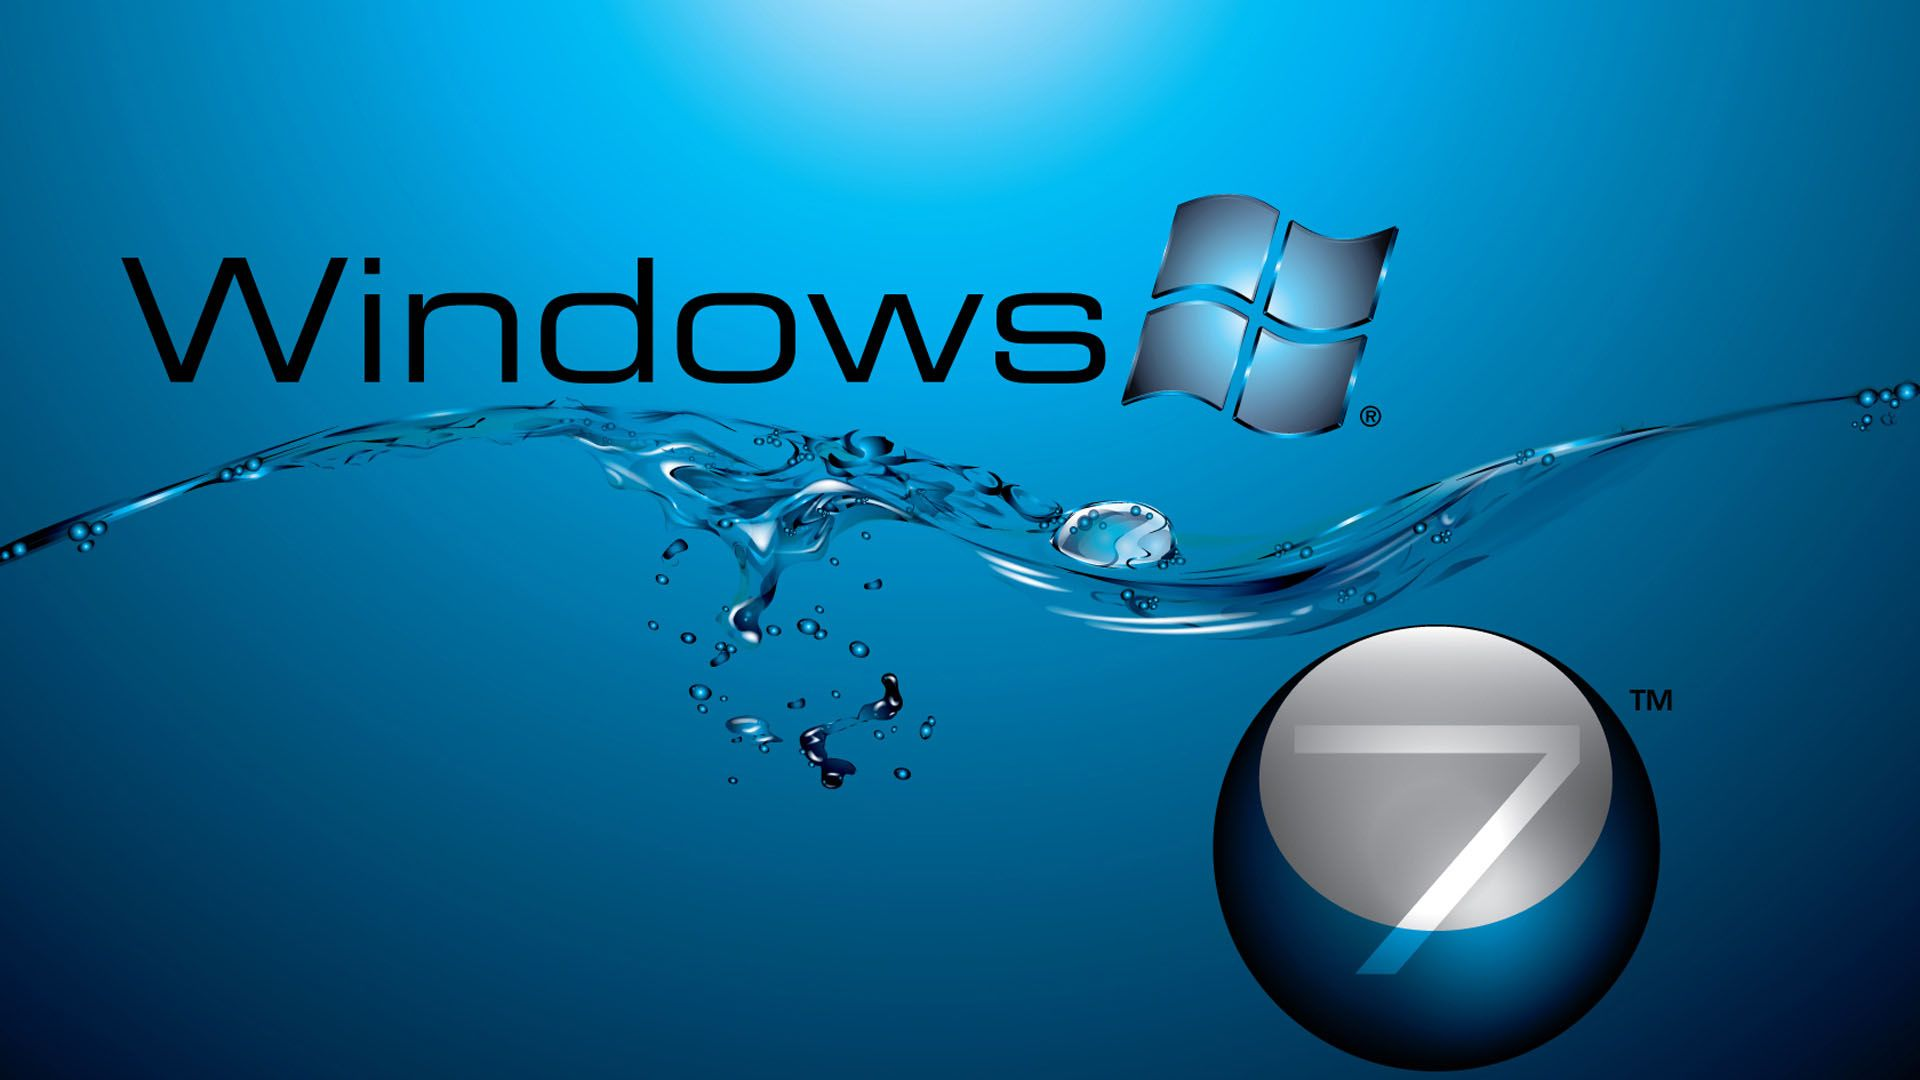 windows 7 in water flow 1920Ã 1080 hd 1080p wallpaper lugares